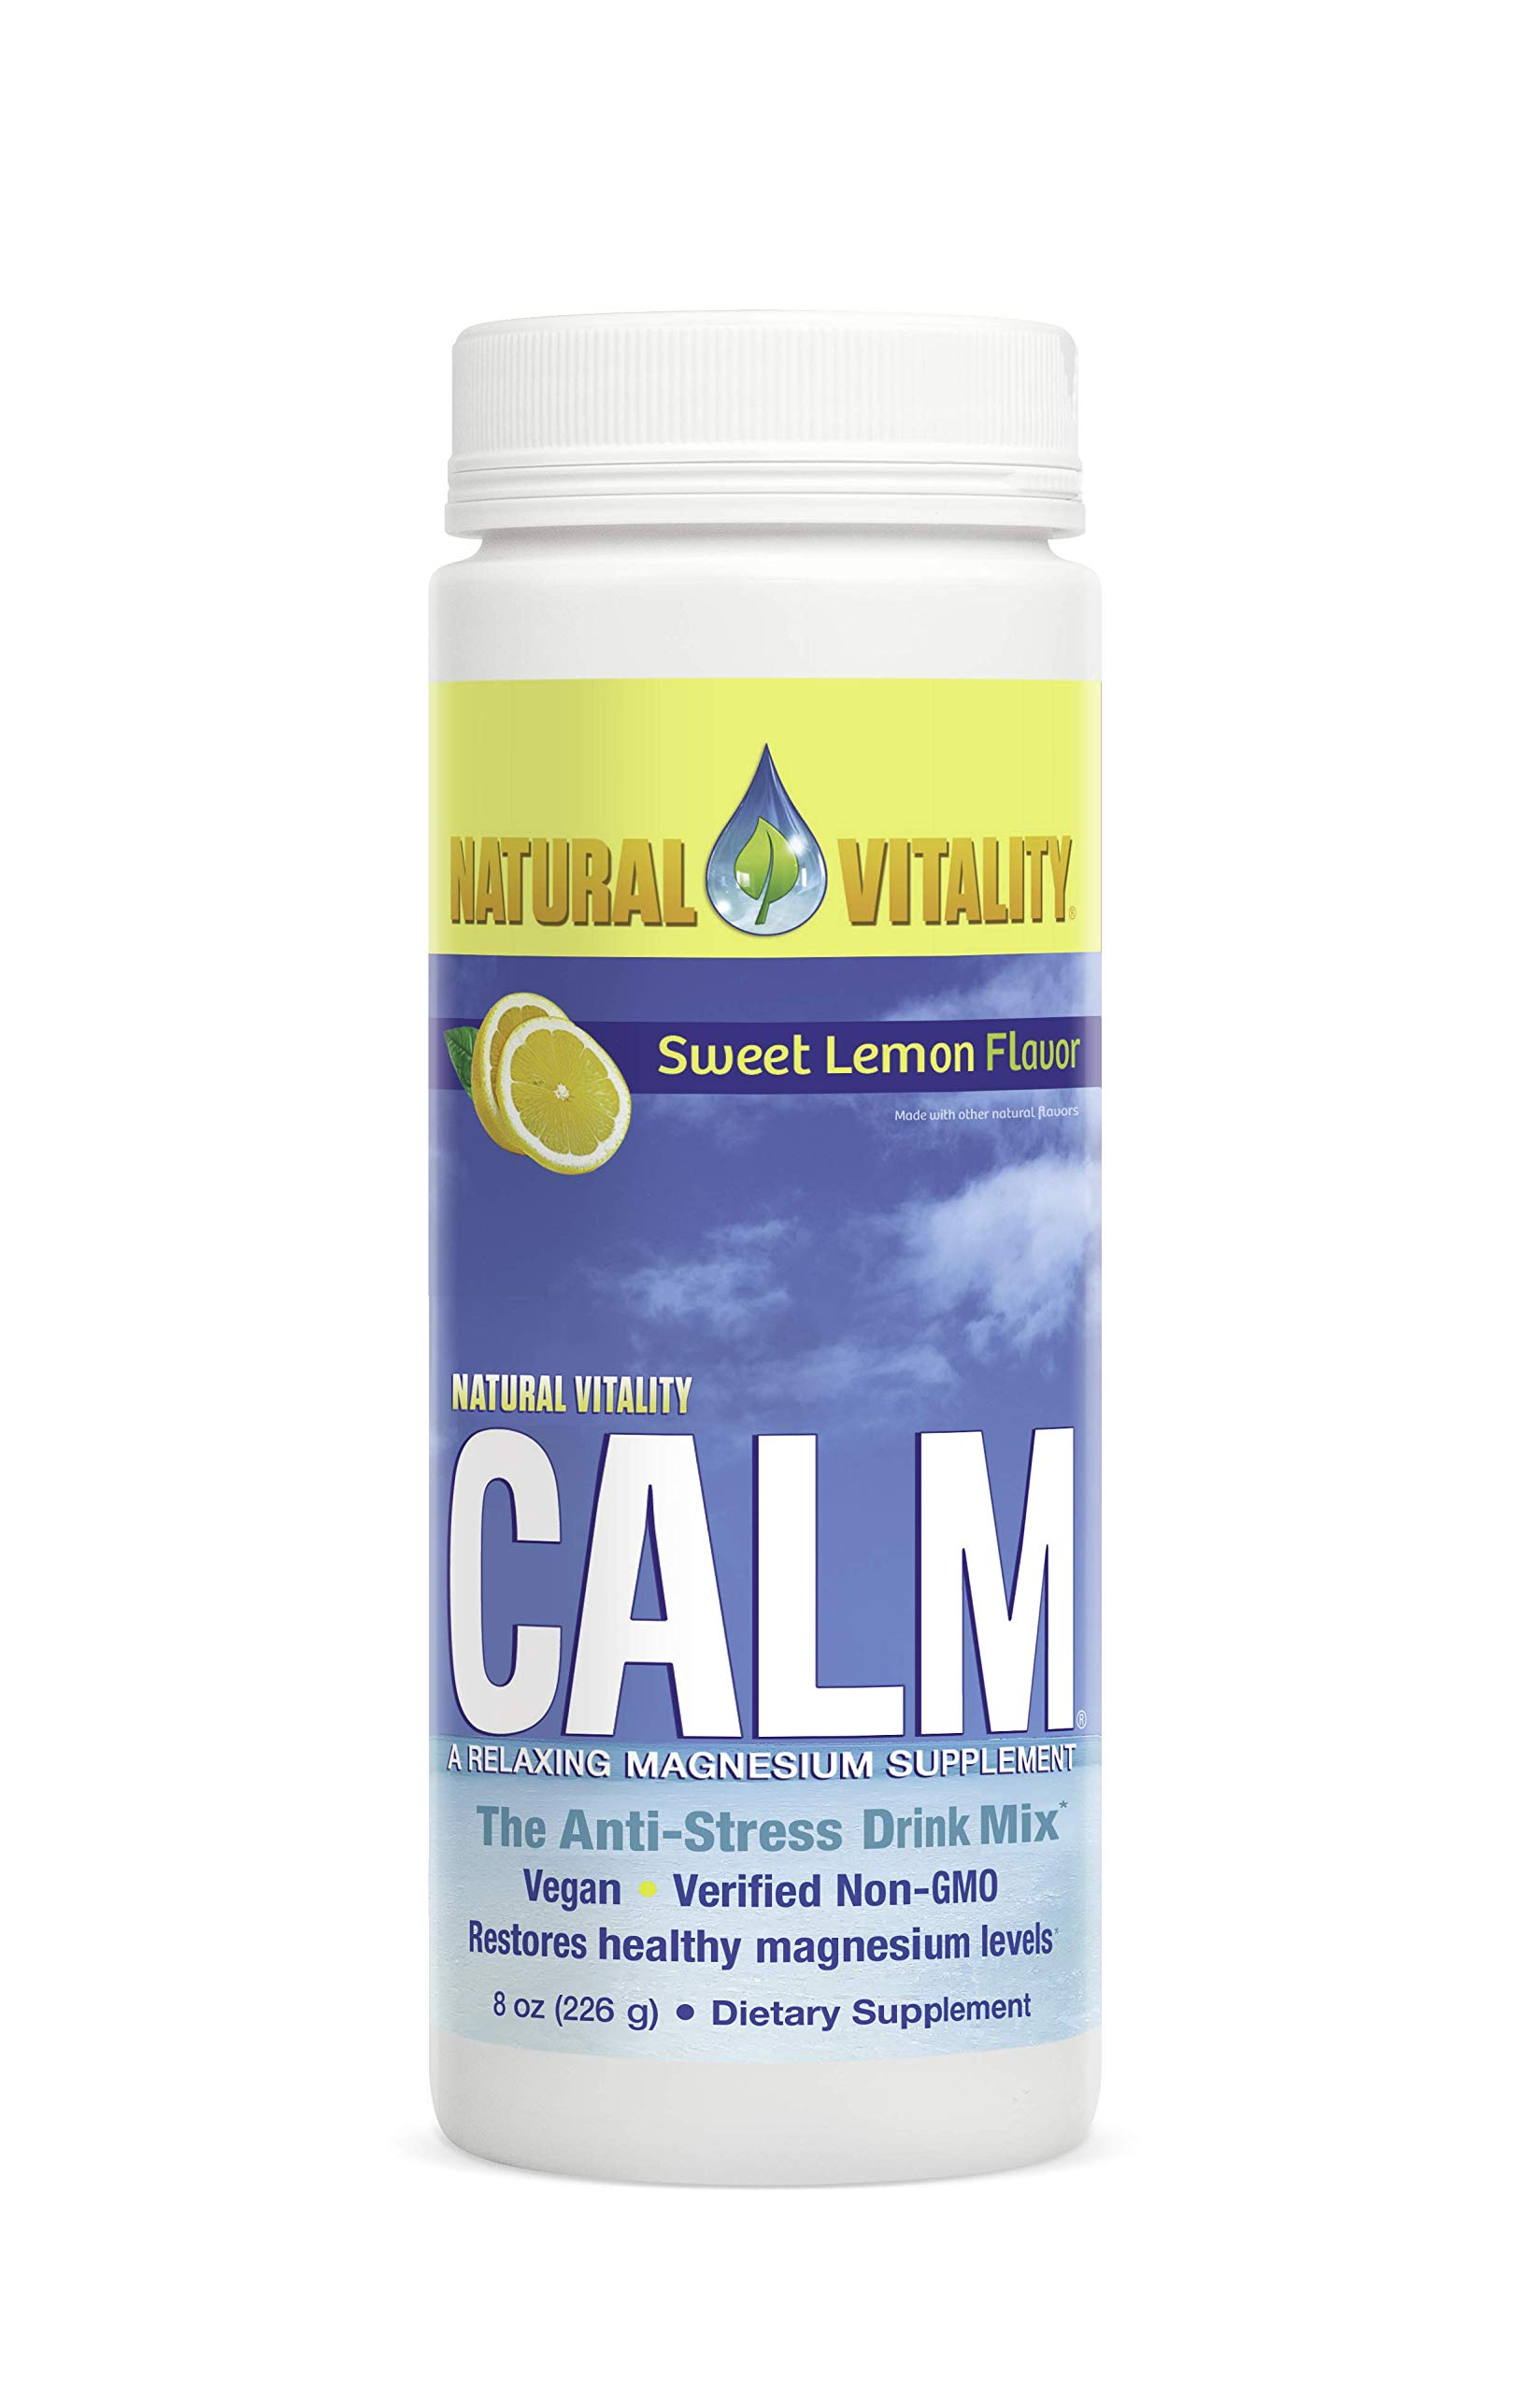 Natural Vitality Calm, The Anti-Stress Drink Mix, Magnesium Supplement Powder, Lemon- 8 Ounce (Packaging May Vary) by Natural Vitality